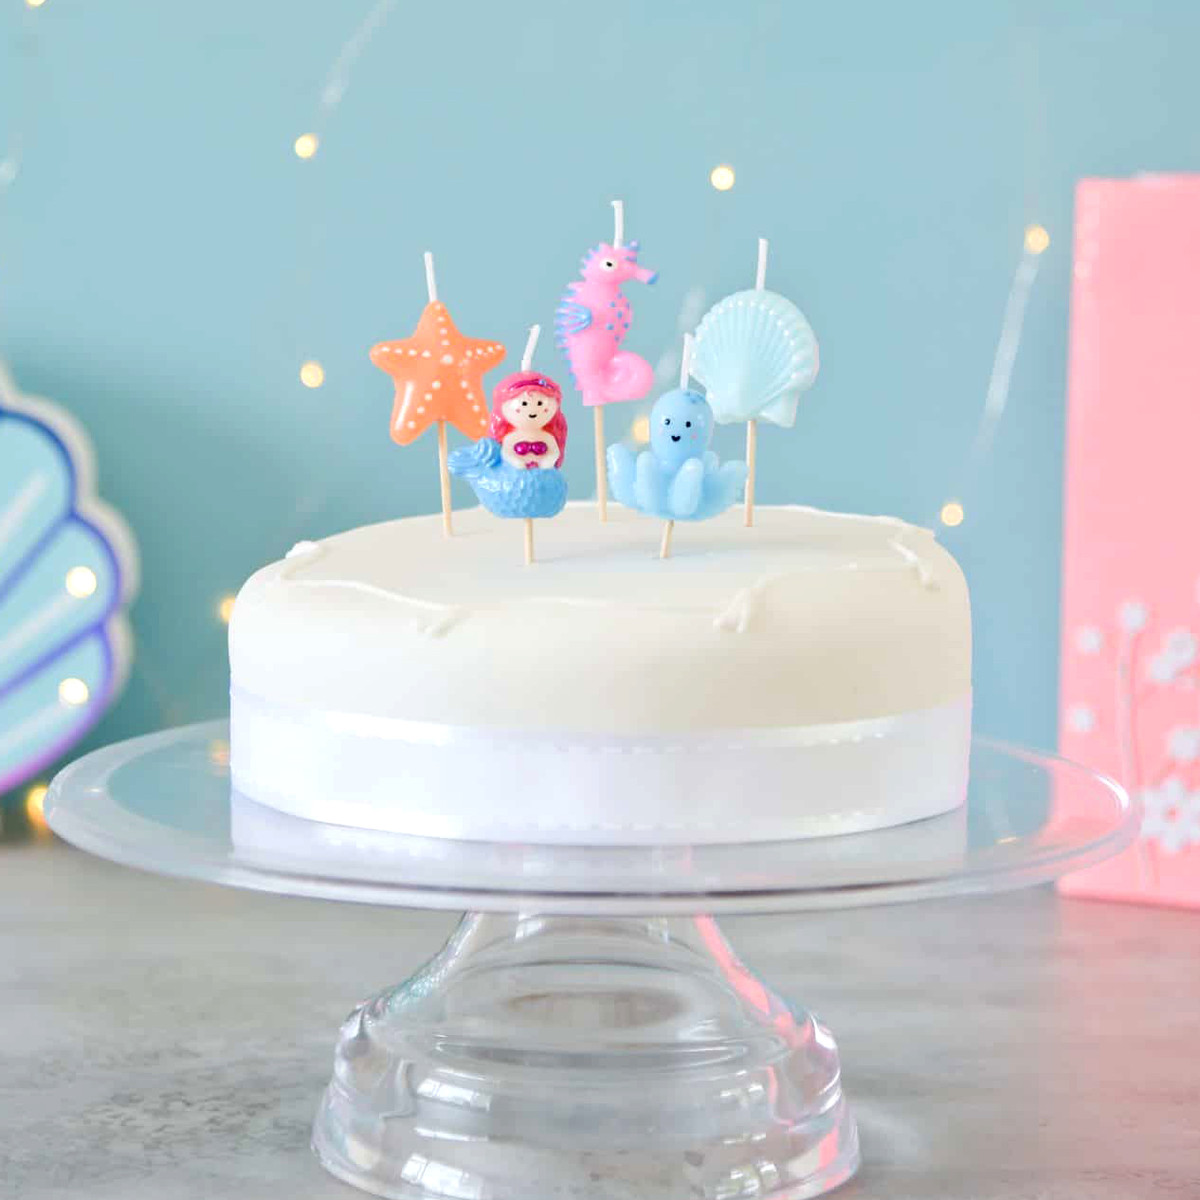 MAKE A WISH PASTEL BIRTHDAY CAKE CANDLE PACK